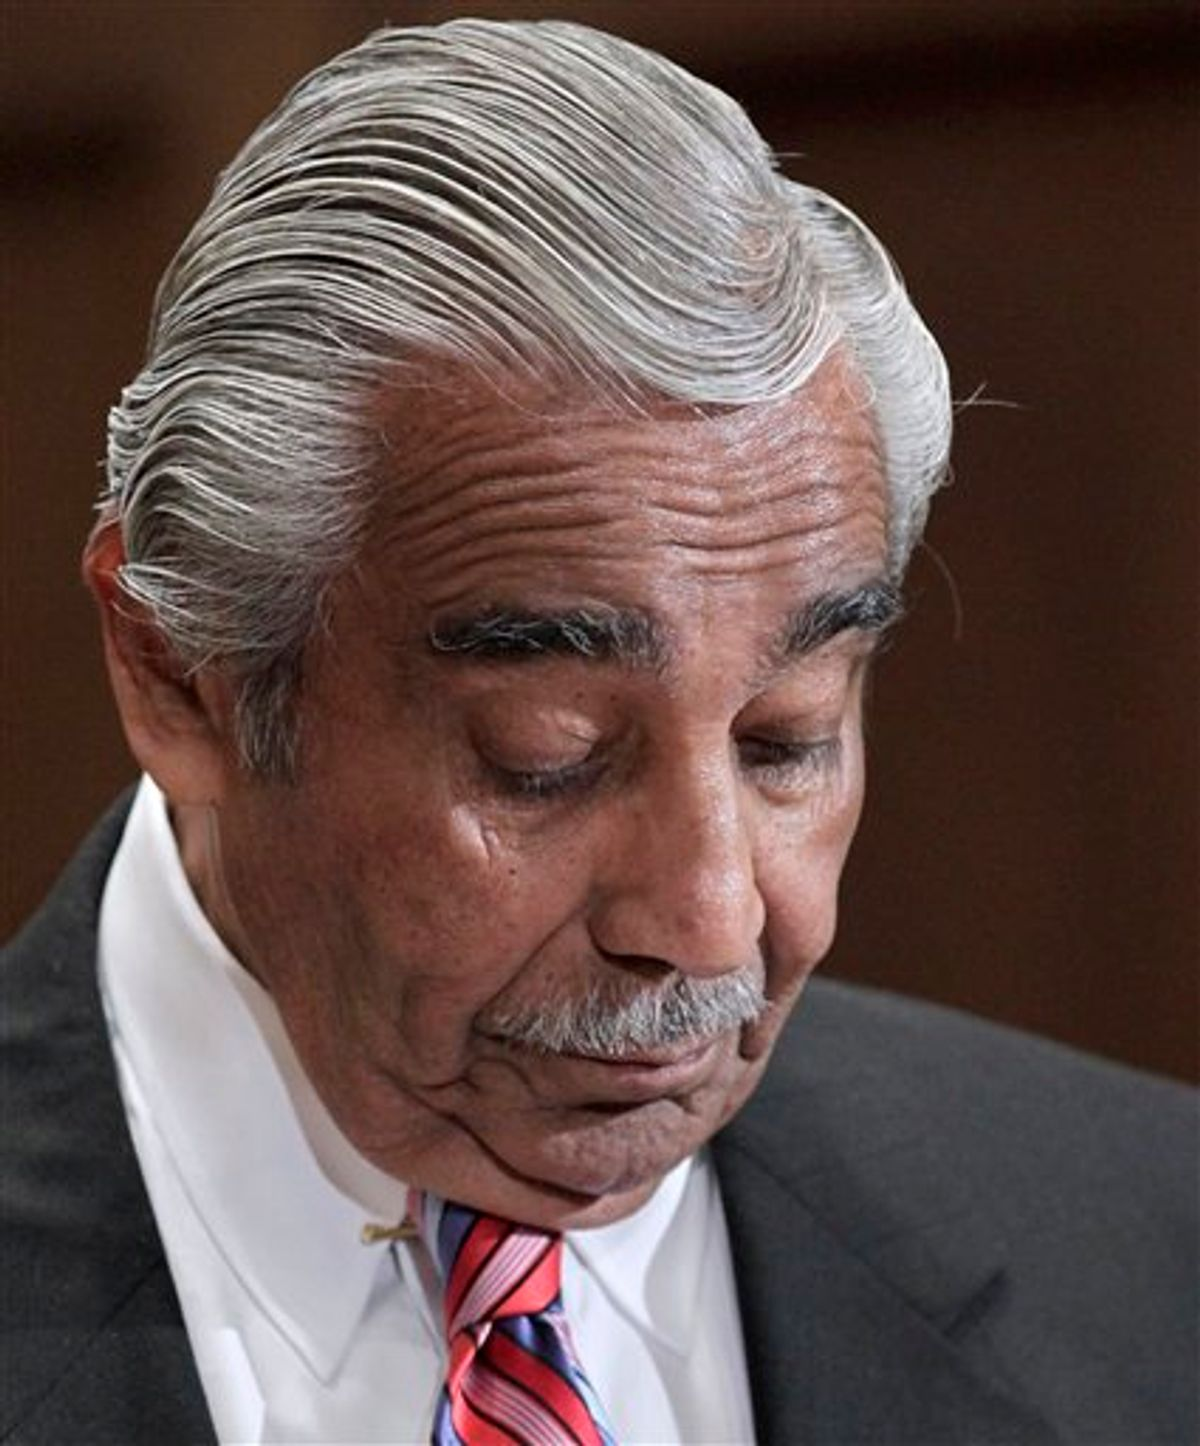 Rep. Charlie Rangel, D-N.Y., appears  on Capitol Hill in Washington, Monday, Nov. 15, 2010, before the House Committee on Standards of Official Conduct hearing as he faces 13 charges of violating House ethics rules. (AP Photo/J. Scott Applewhite) (AP)